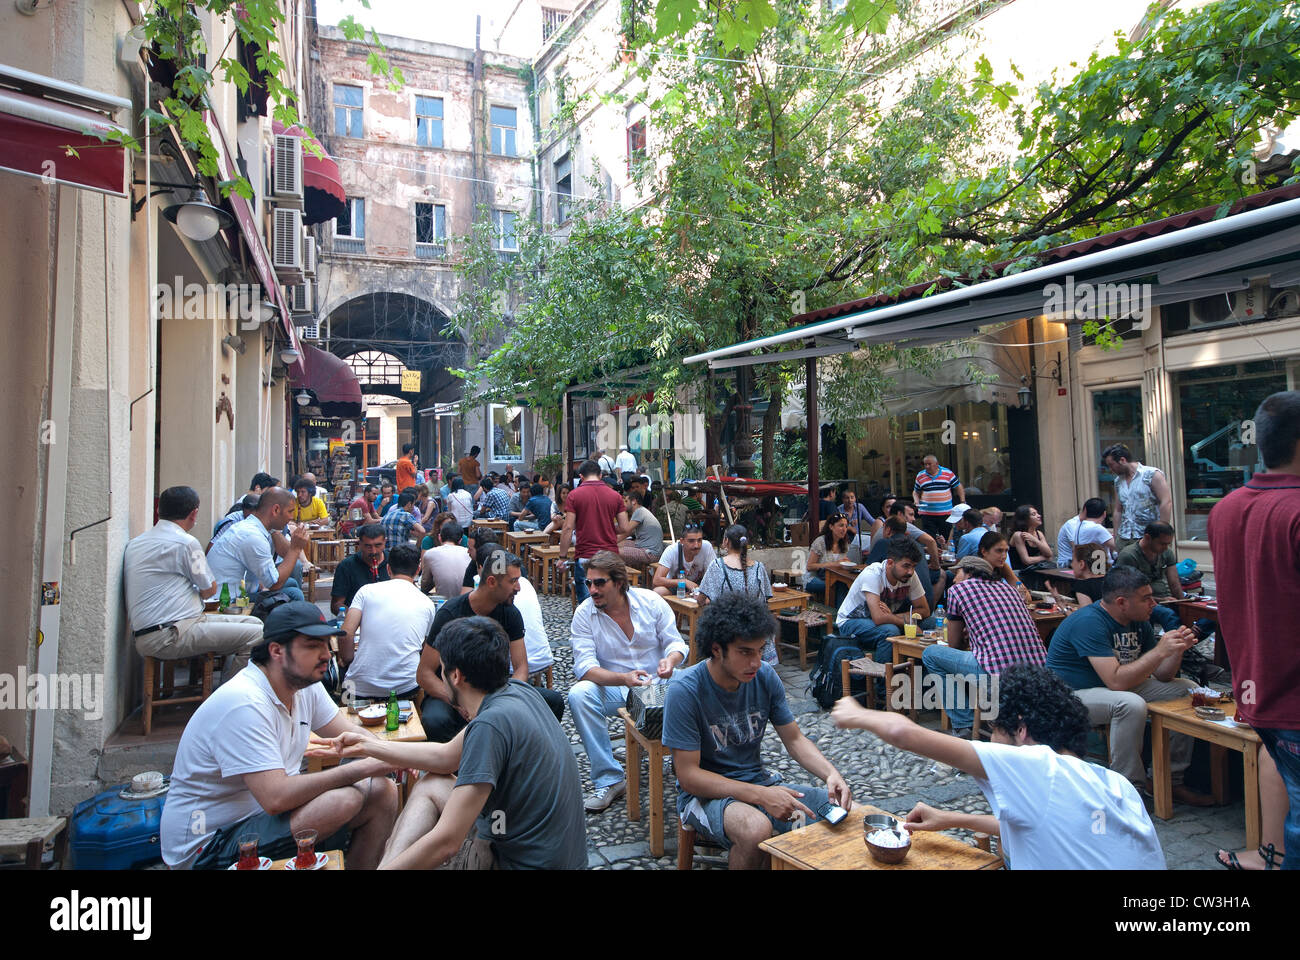 ISTANBUL, TURKEY. Young Turkish people at a street cafe off Istiklal Caddesi in the Beyoglu district of the city. - Stock Image